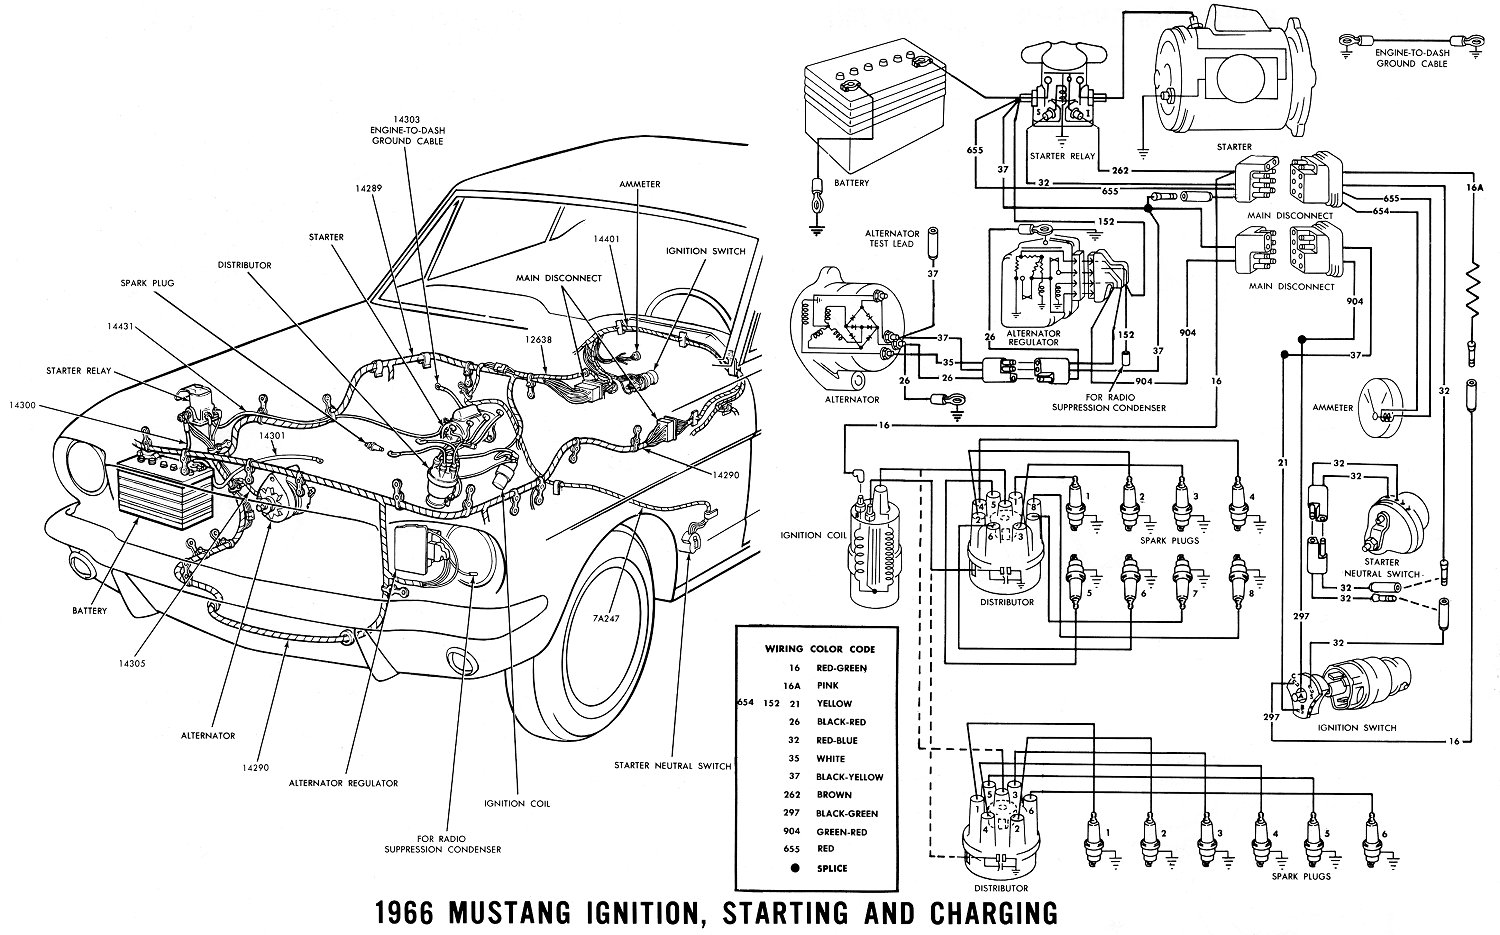 1969 Mustang Under Dash Wiring Diagram For 2002 Ford Explorer Ii Cluster